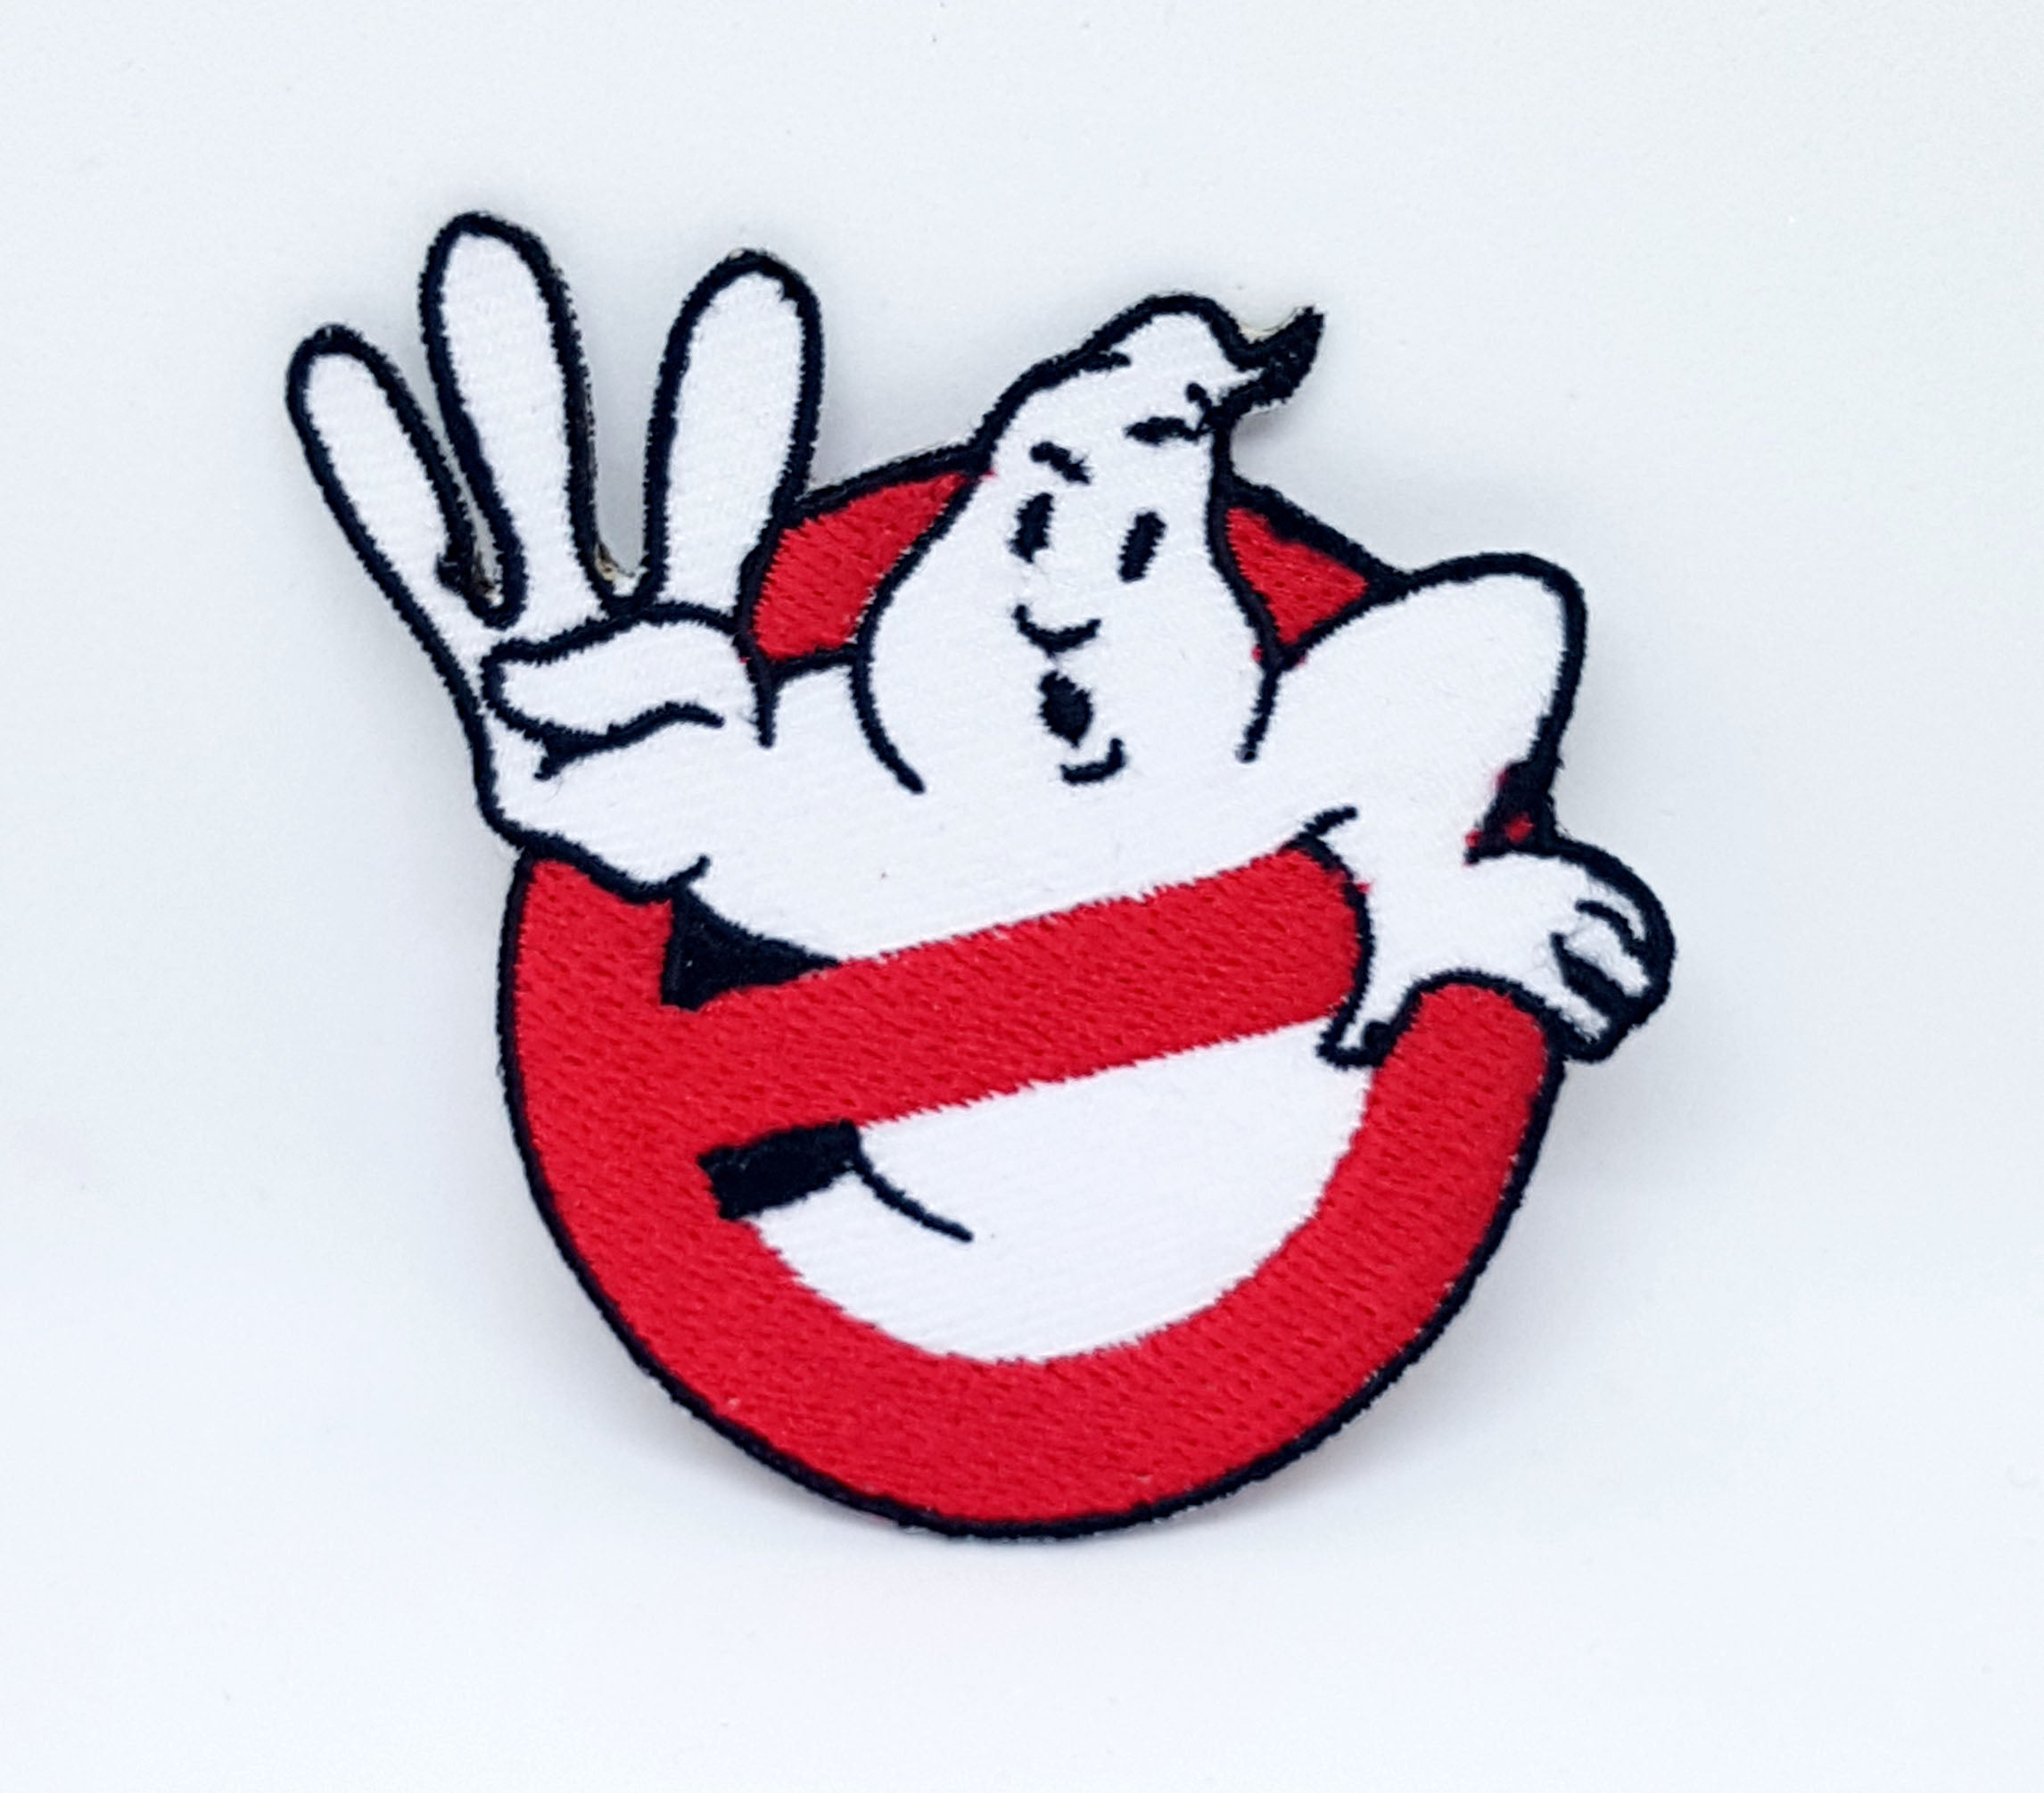 GHOSTBUSTERS LOGO Fancy Dress Iron Sew On Embroidered Patch - Patches-Badges